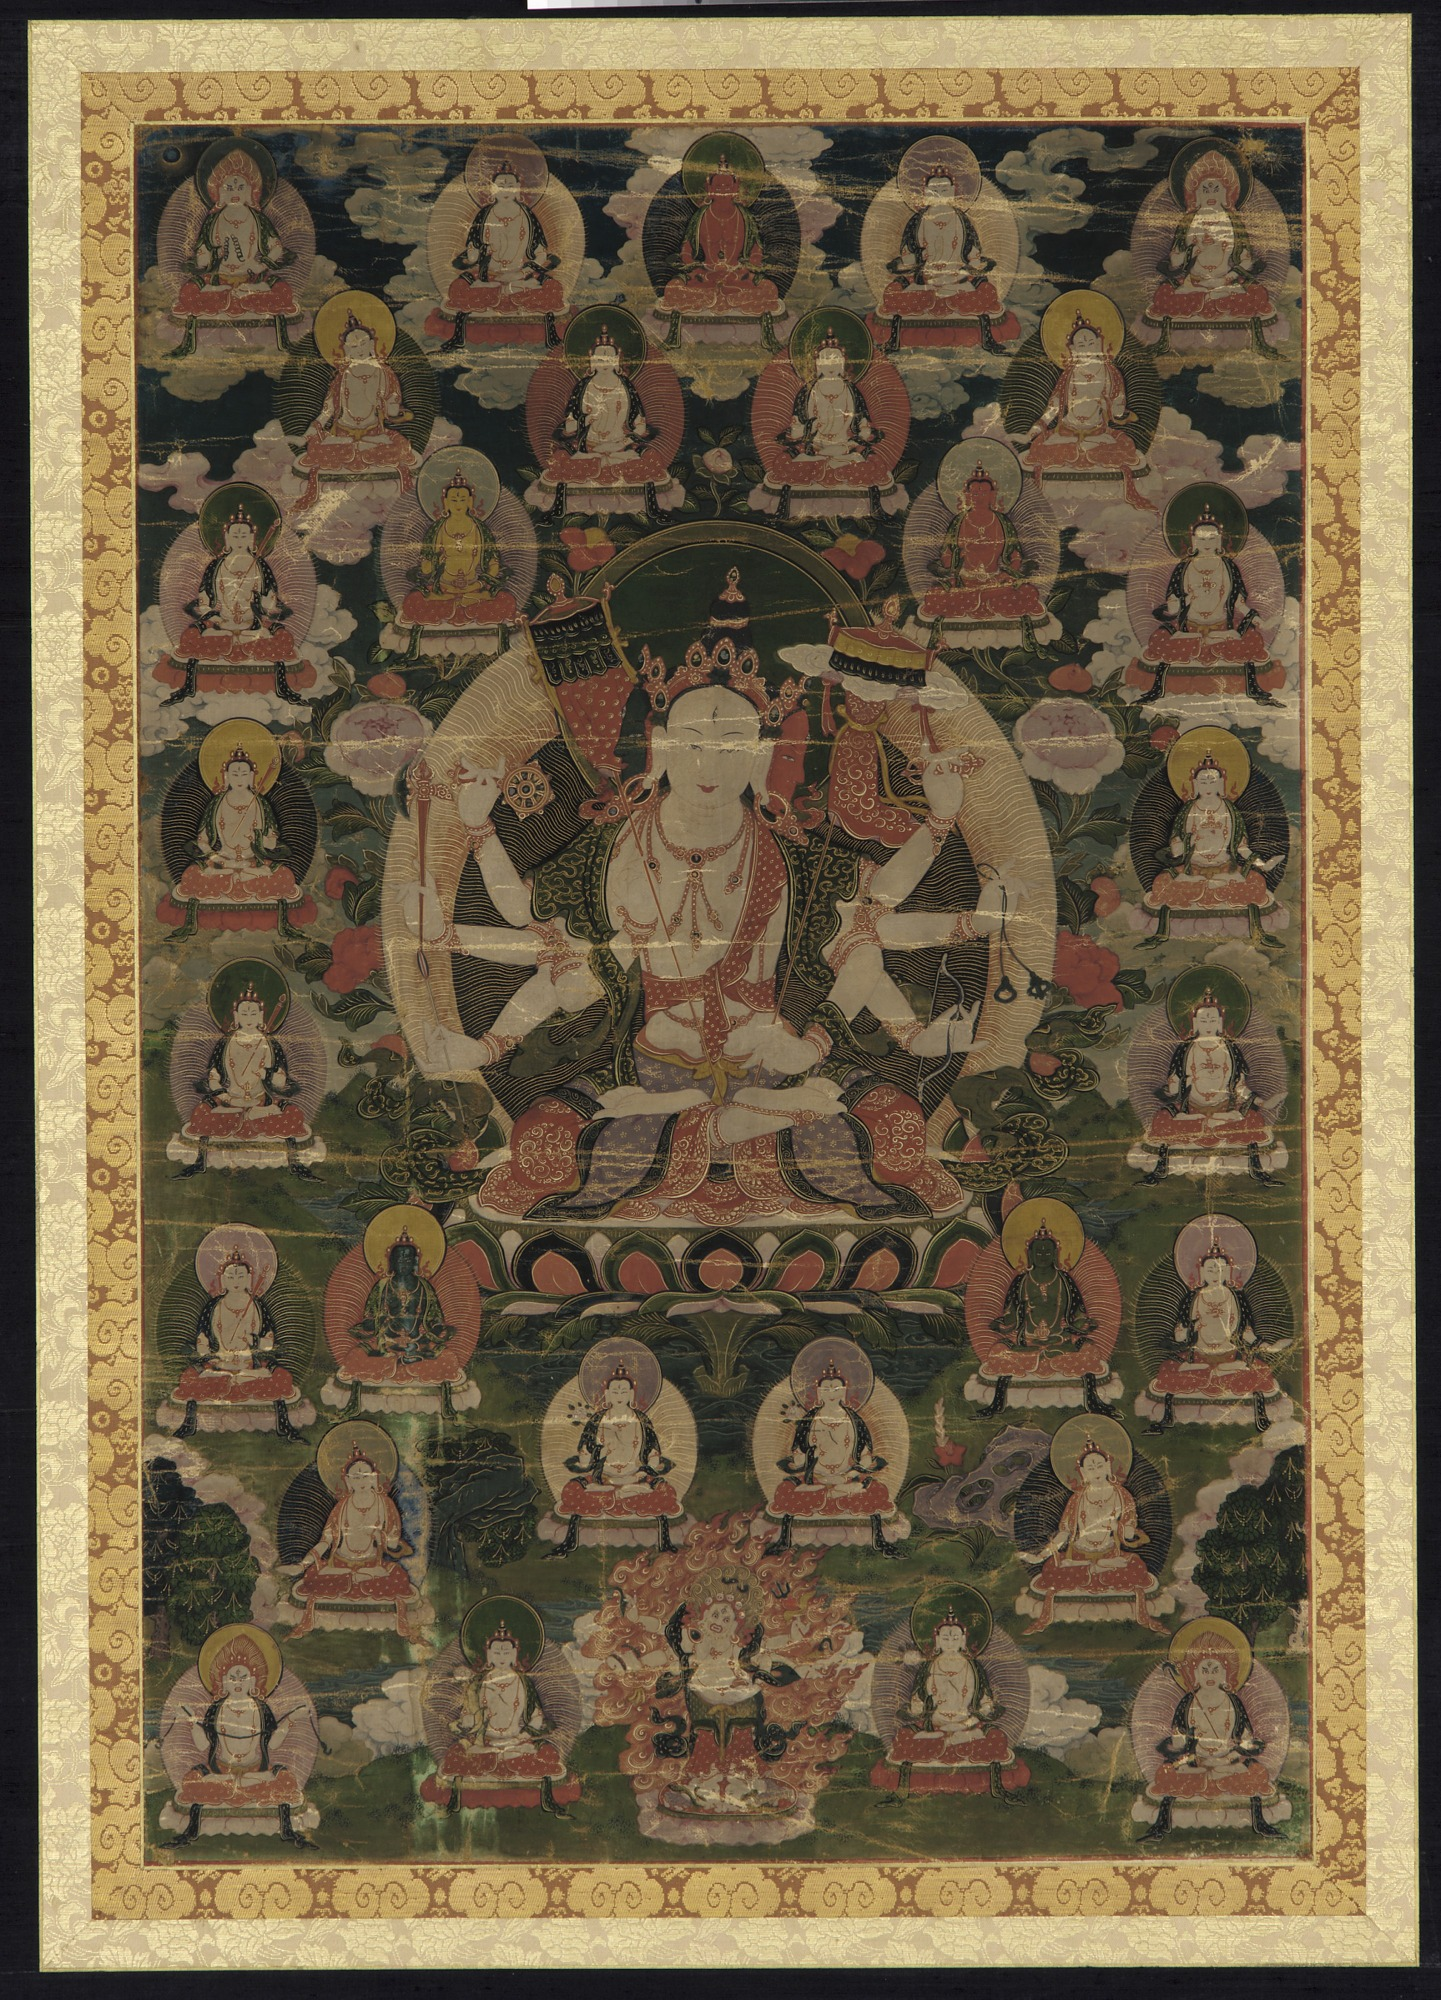 Sitatapatra (Sitatapatrosnisa ?) and thirty other divinities